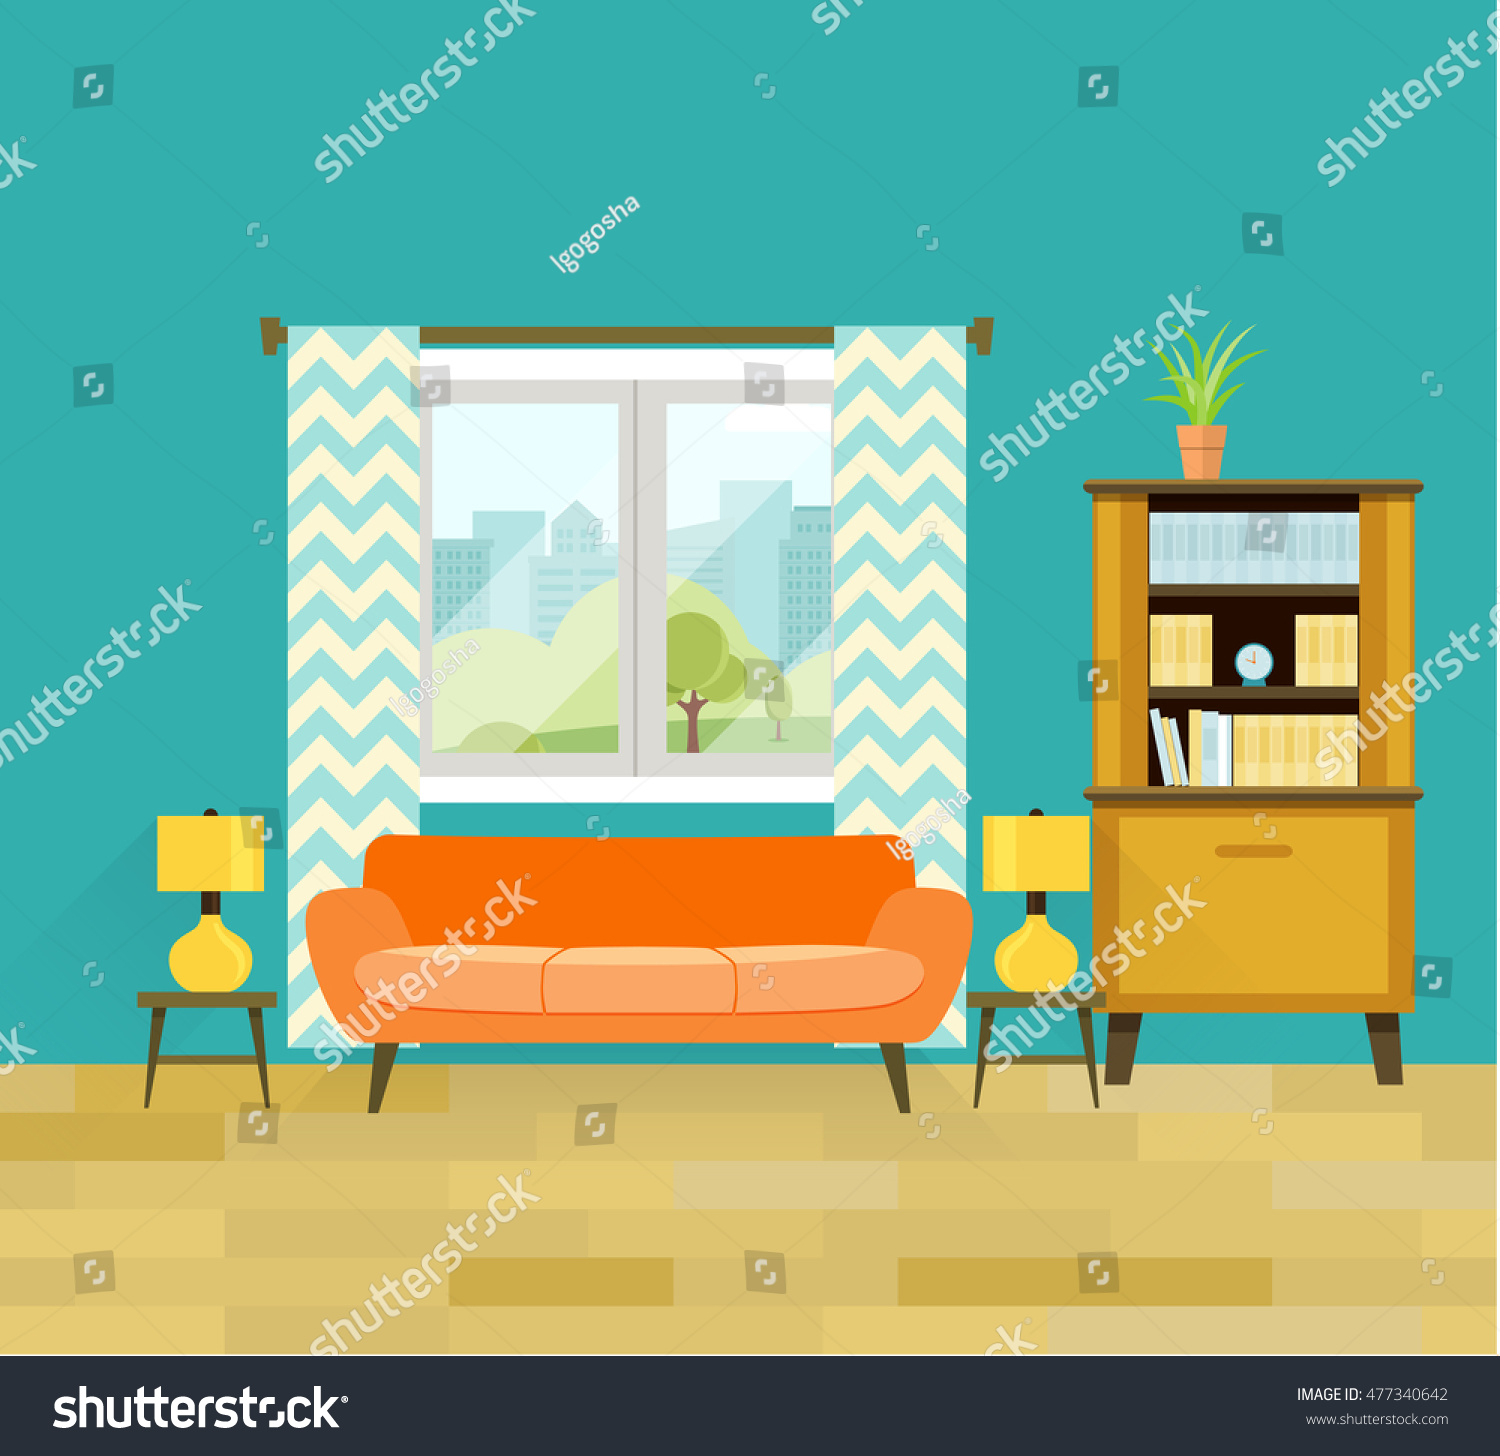 retro living room. Retro living room with furniture  Cozy interior sofa and bookcase Flat vector illustration Living Room Furniture Interior Stock Vector 477340642